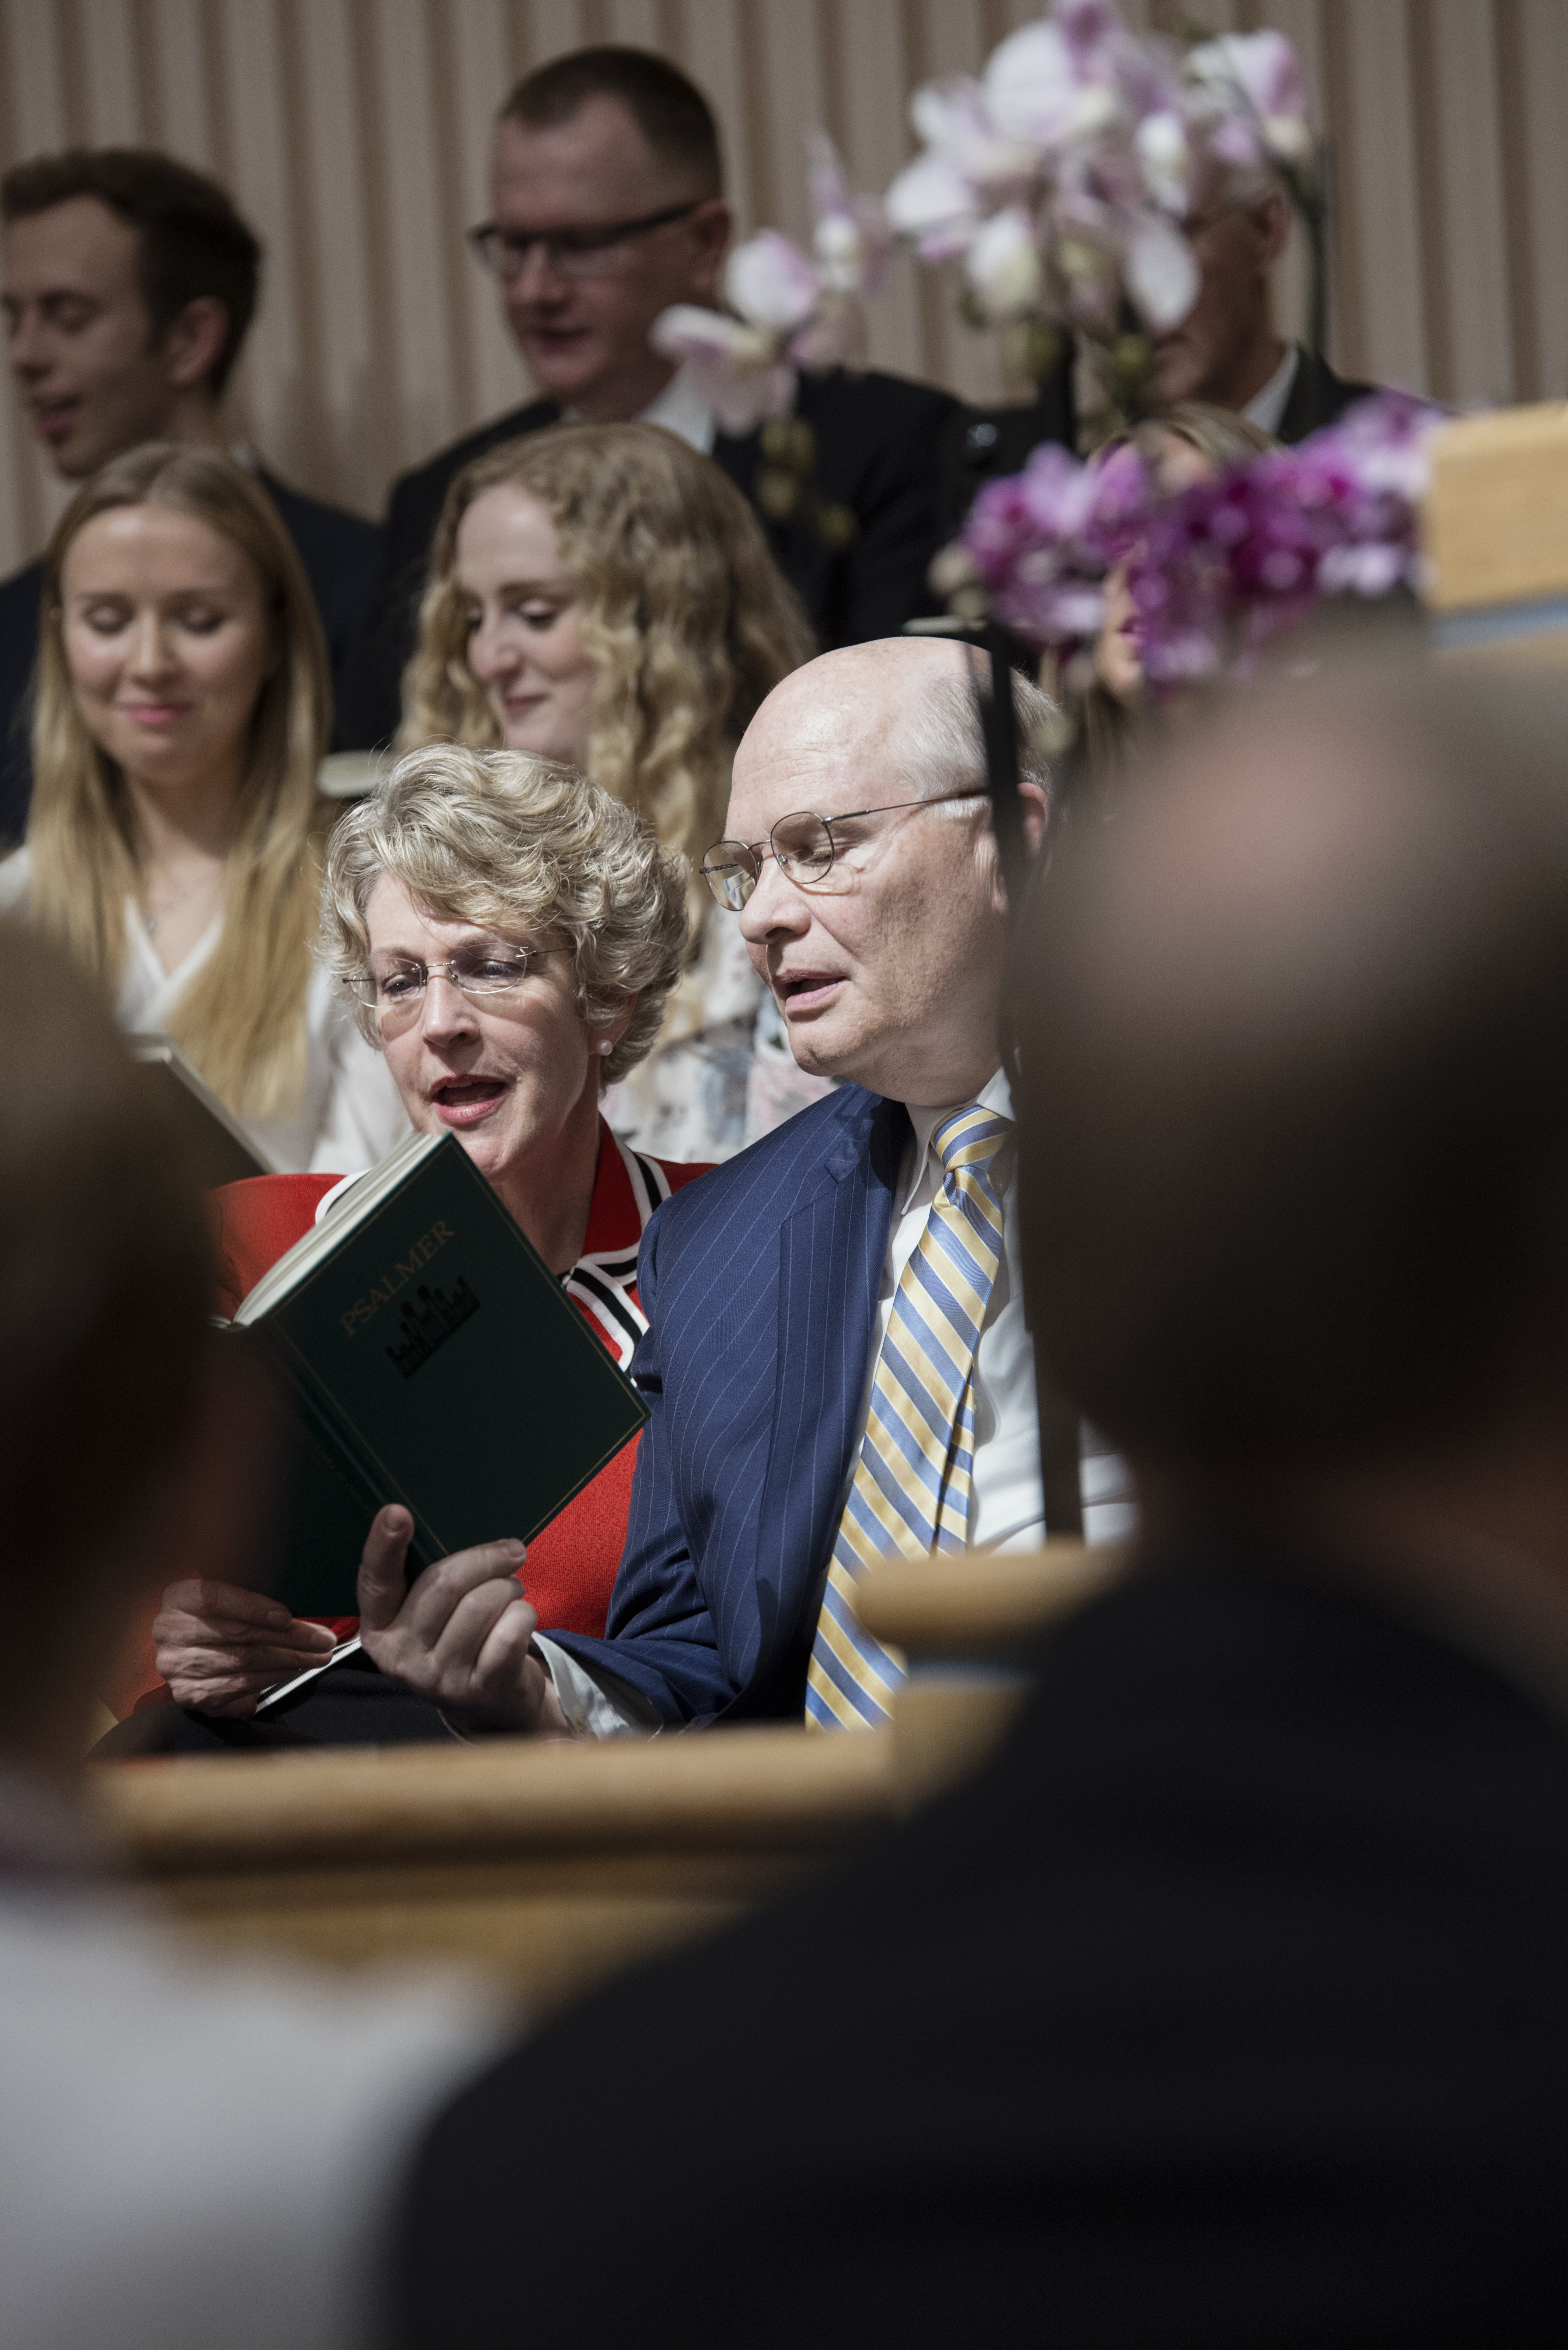 Elder Dale G. Renlund of the Quorum of the Twelve Apostles and his wife, Sister Ruth L. Renlund, sing the congregational hymn during a meeting with Church members in Sweden during a visit to the country on April 29.